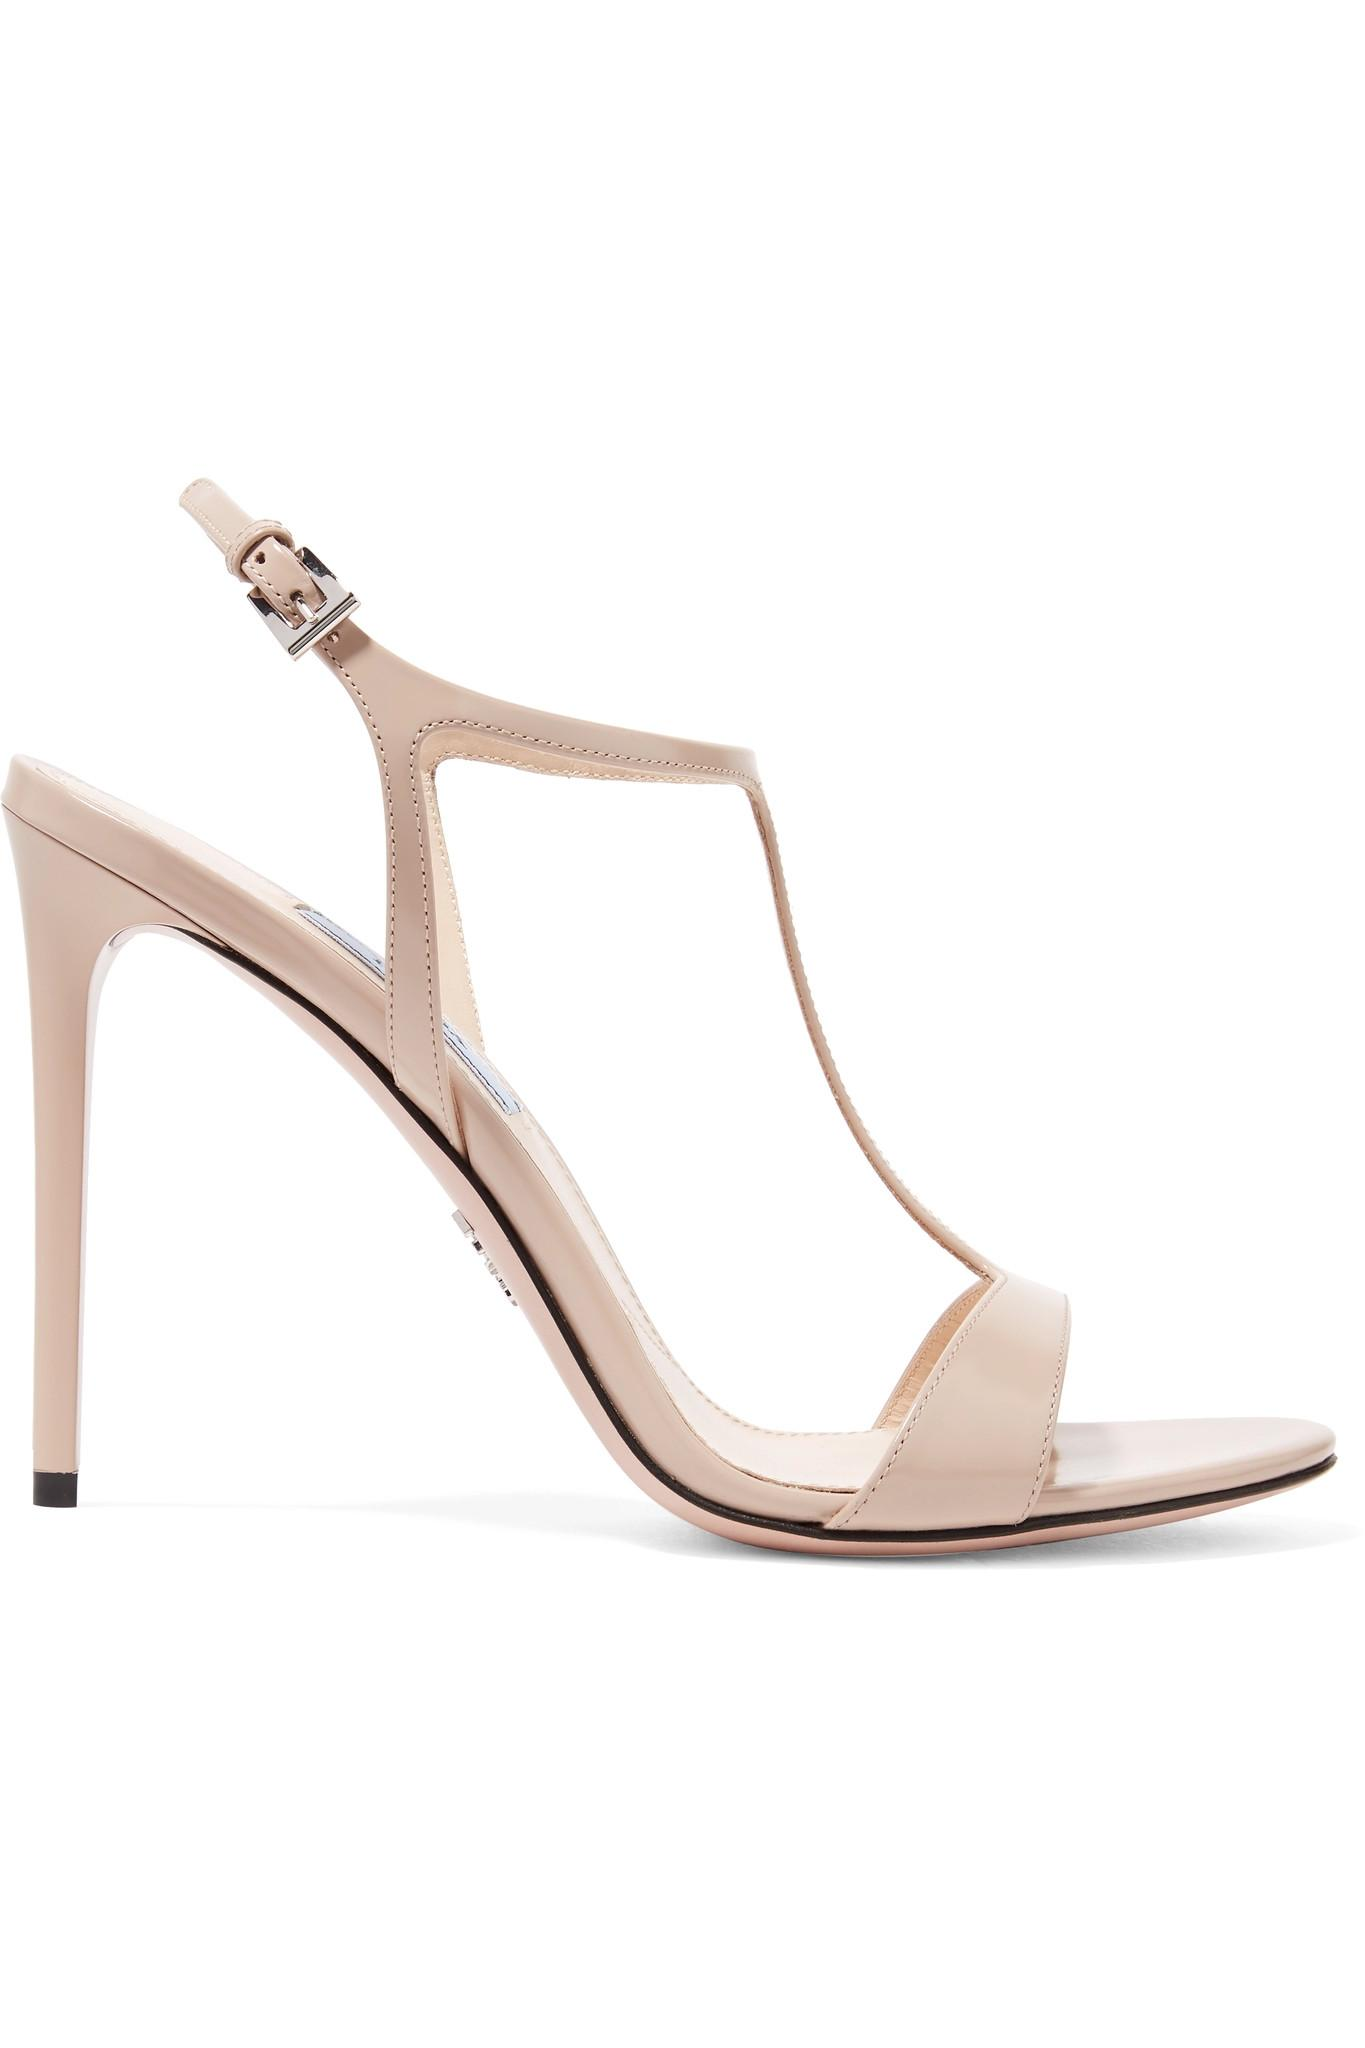 2a3a1f15ab1 Prada 105 Glossed-leather Sandals in Natural - Lyst